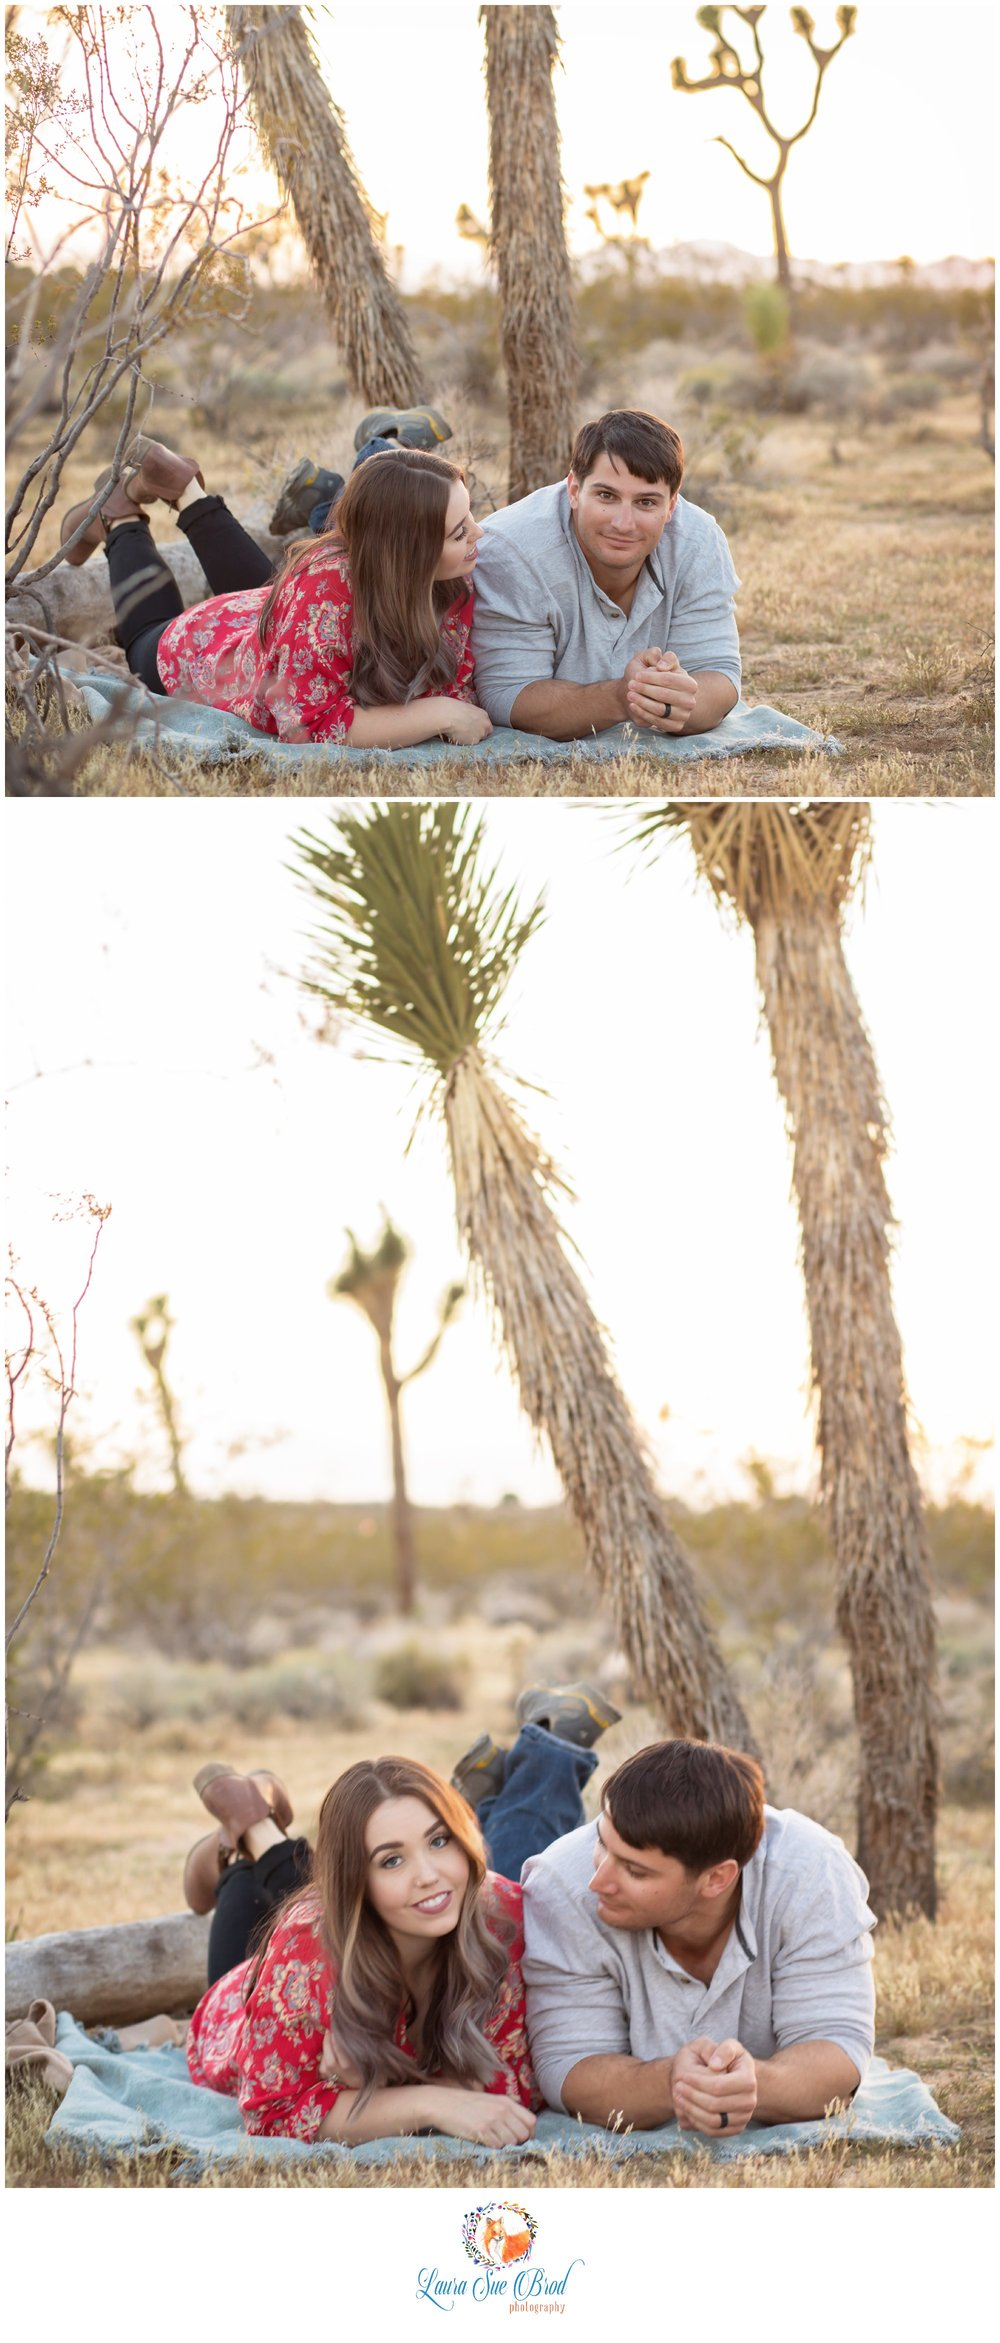 Couples Session, Joshua Tree.    Laura Sue Brod Photography - 2016  www.laurasuebrod.com